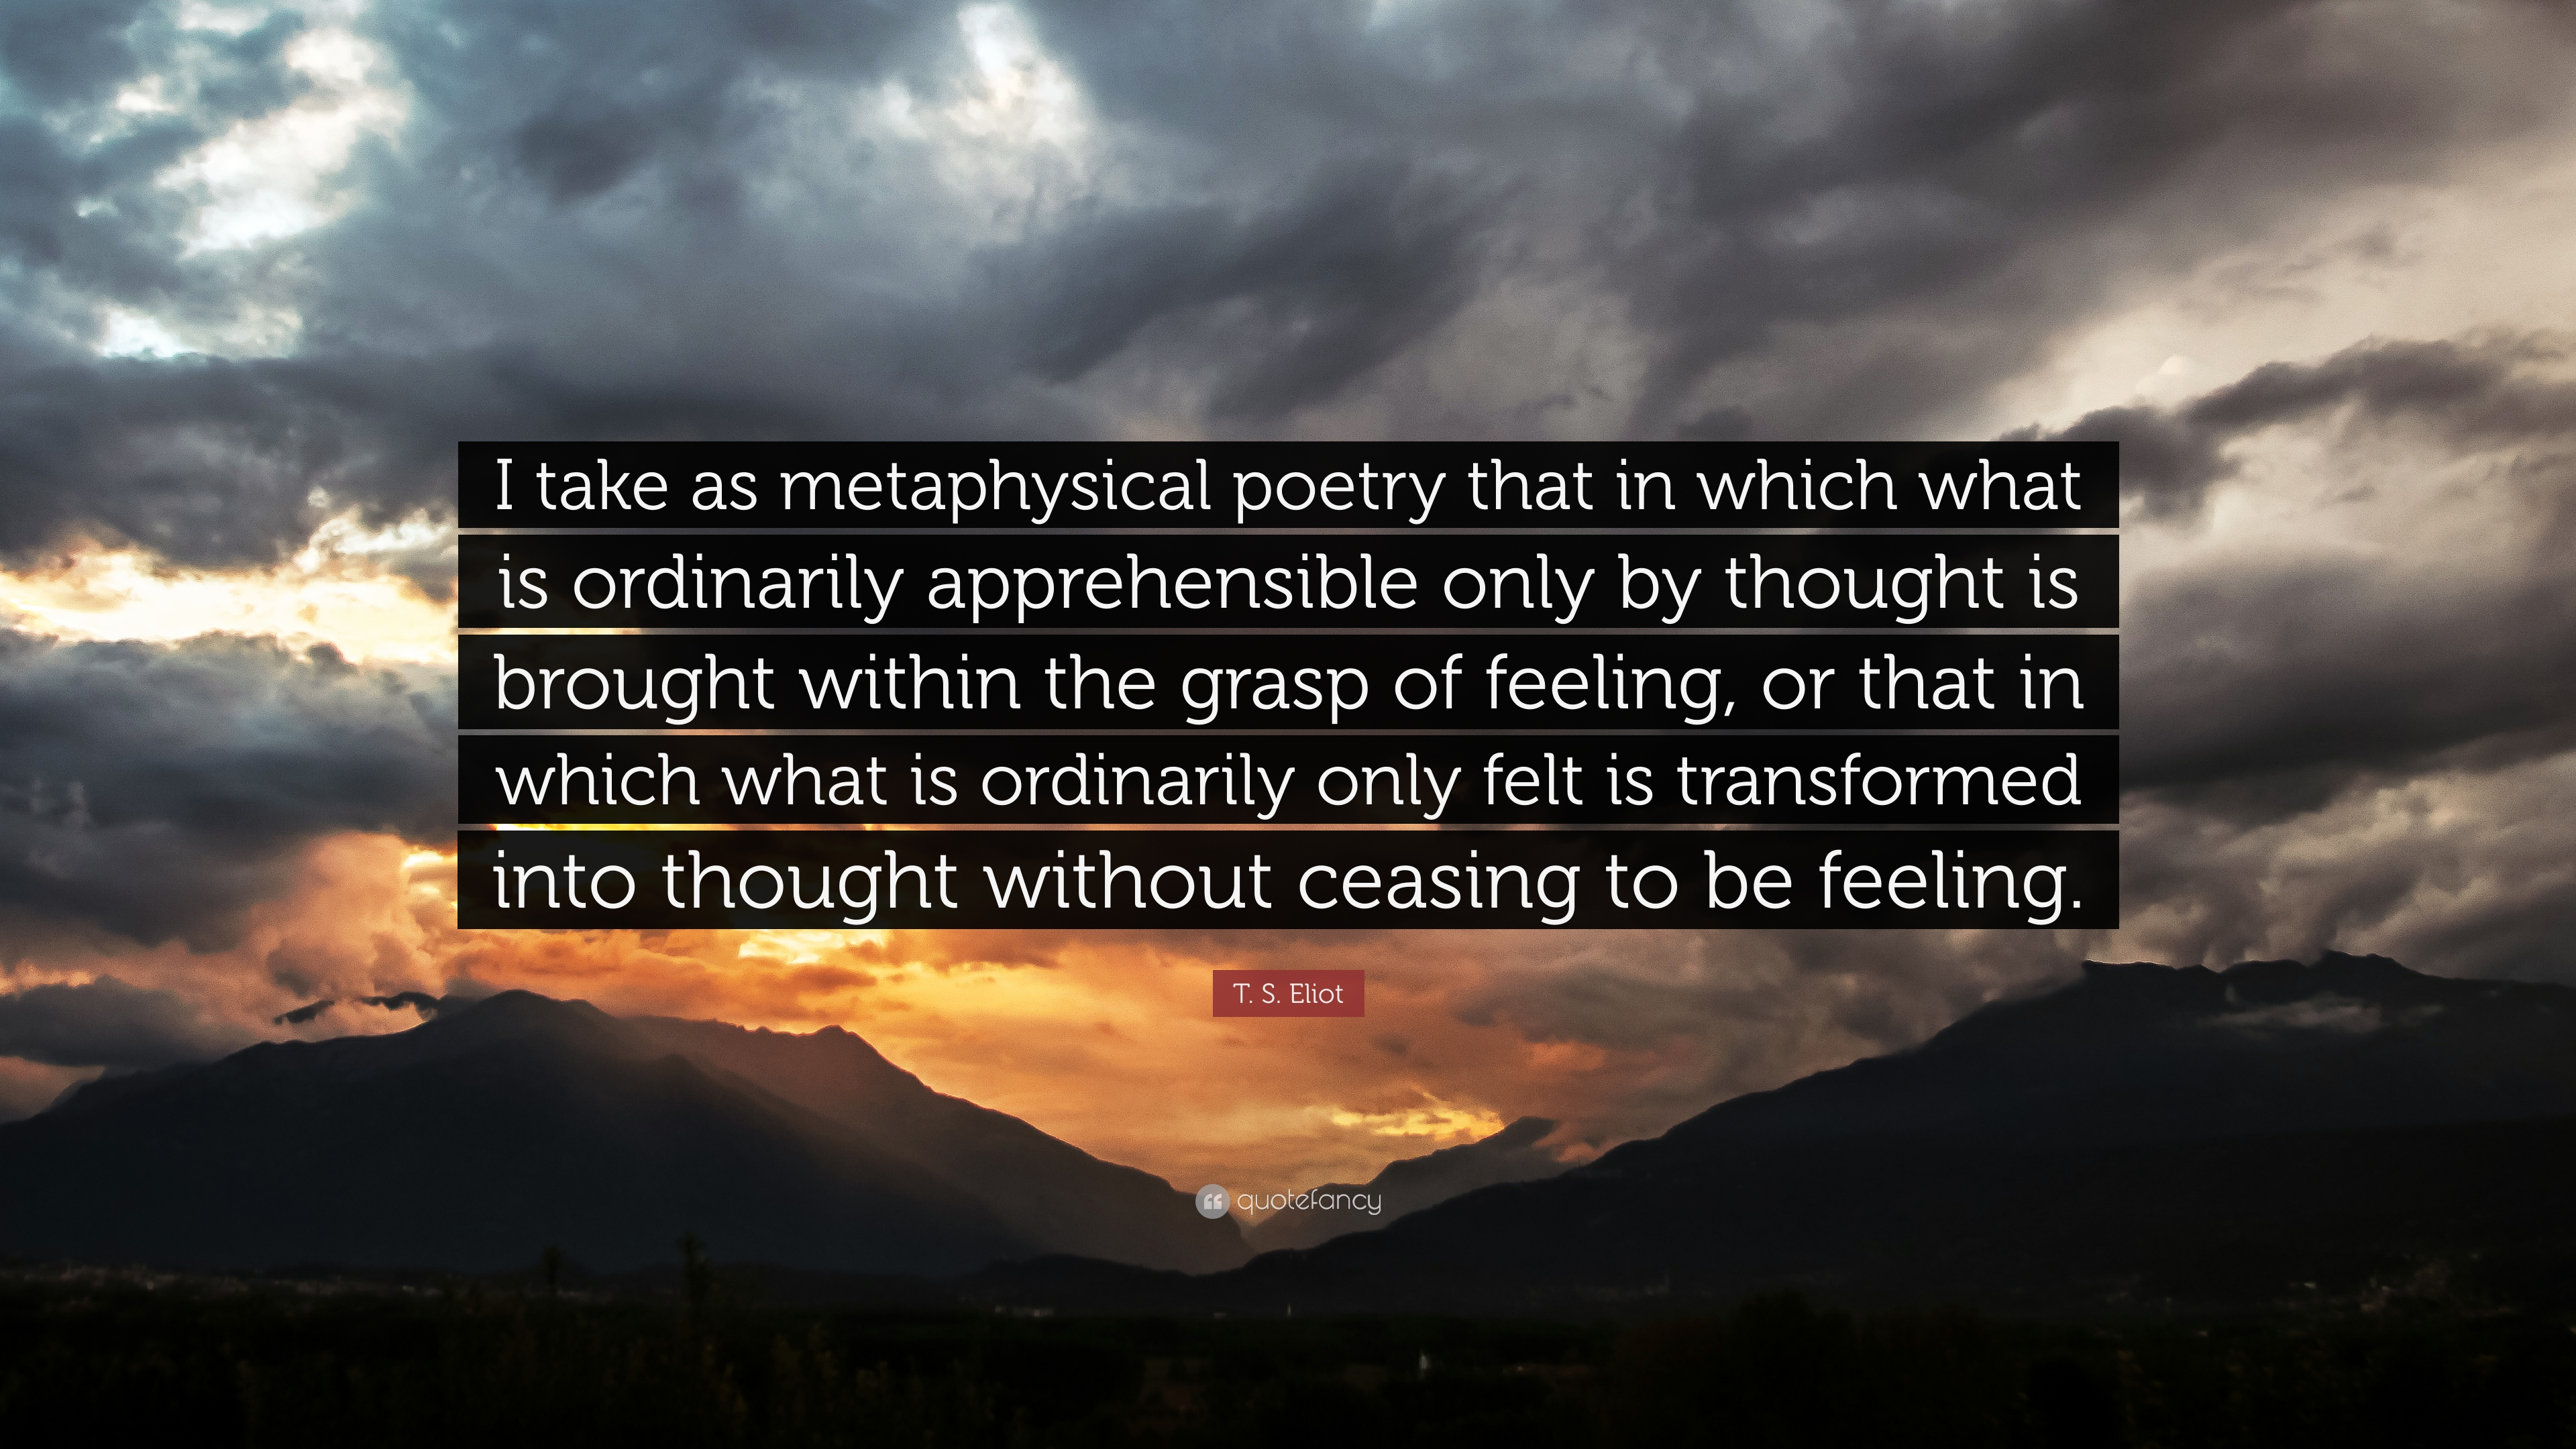 t s eliot essay the metaphysical poets The metaphysical poets has 10 ratings and 0 reviews: by ts eliot other editions want and the essay tradition and the individ , , more more about ts.